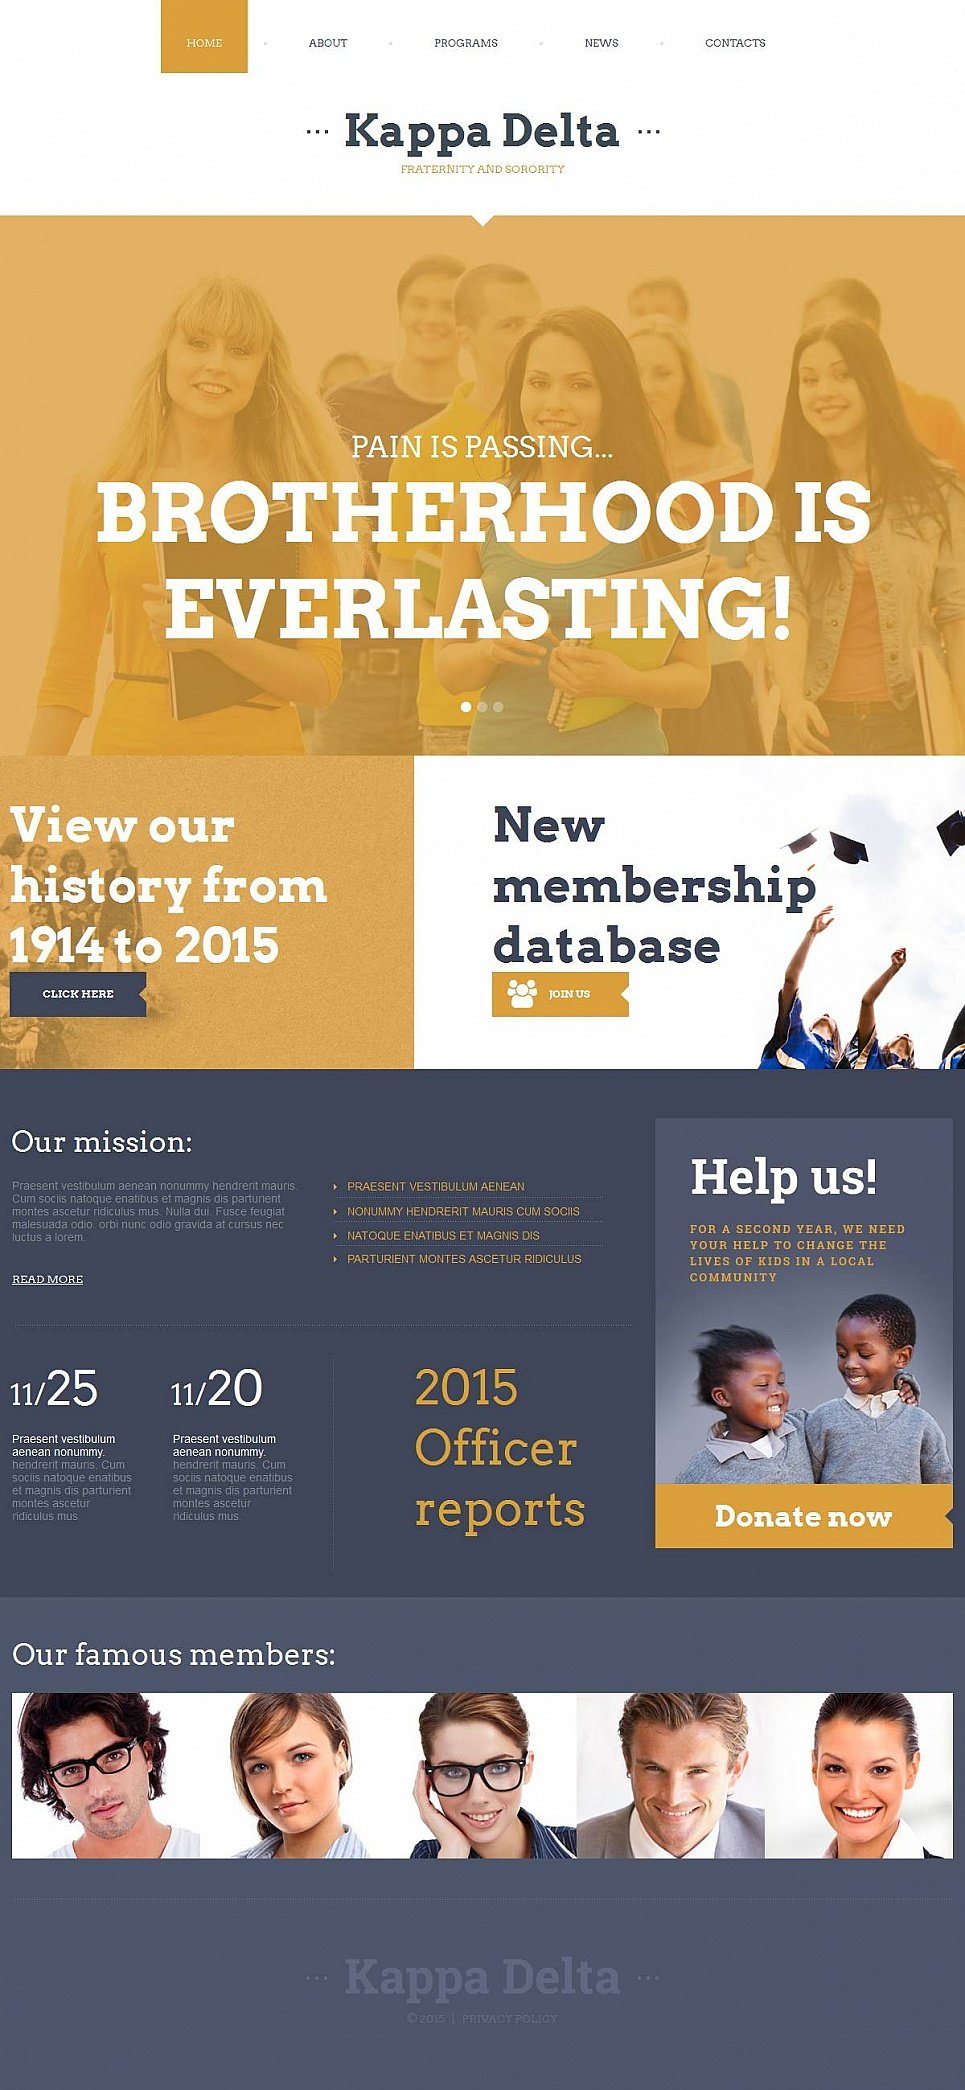 Educational Community Website Design - image